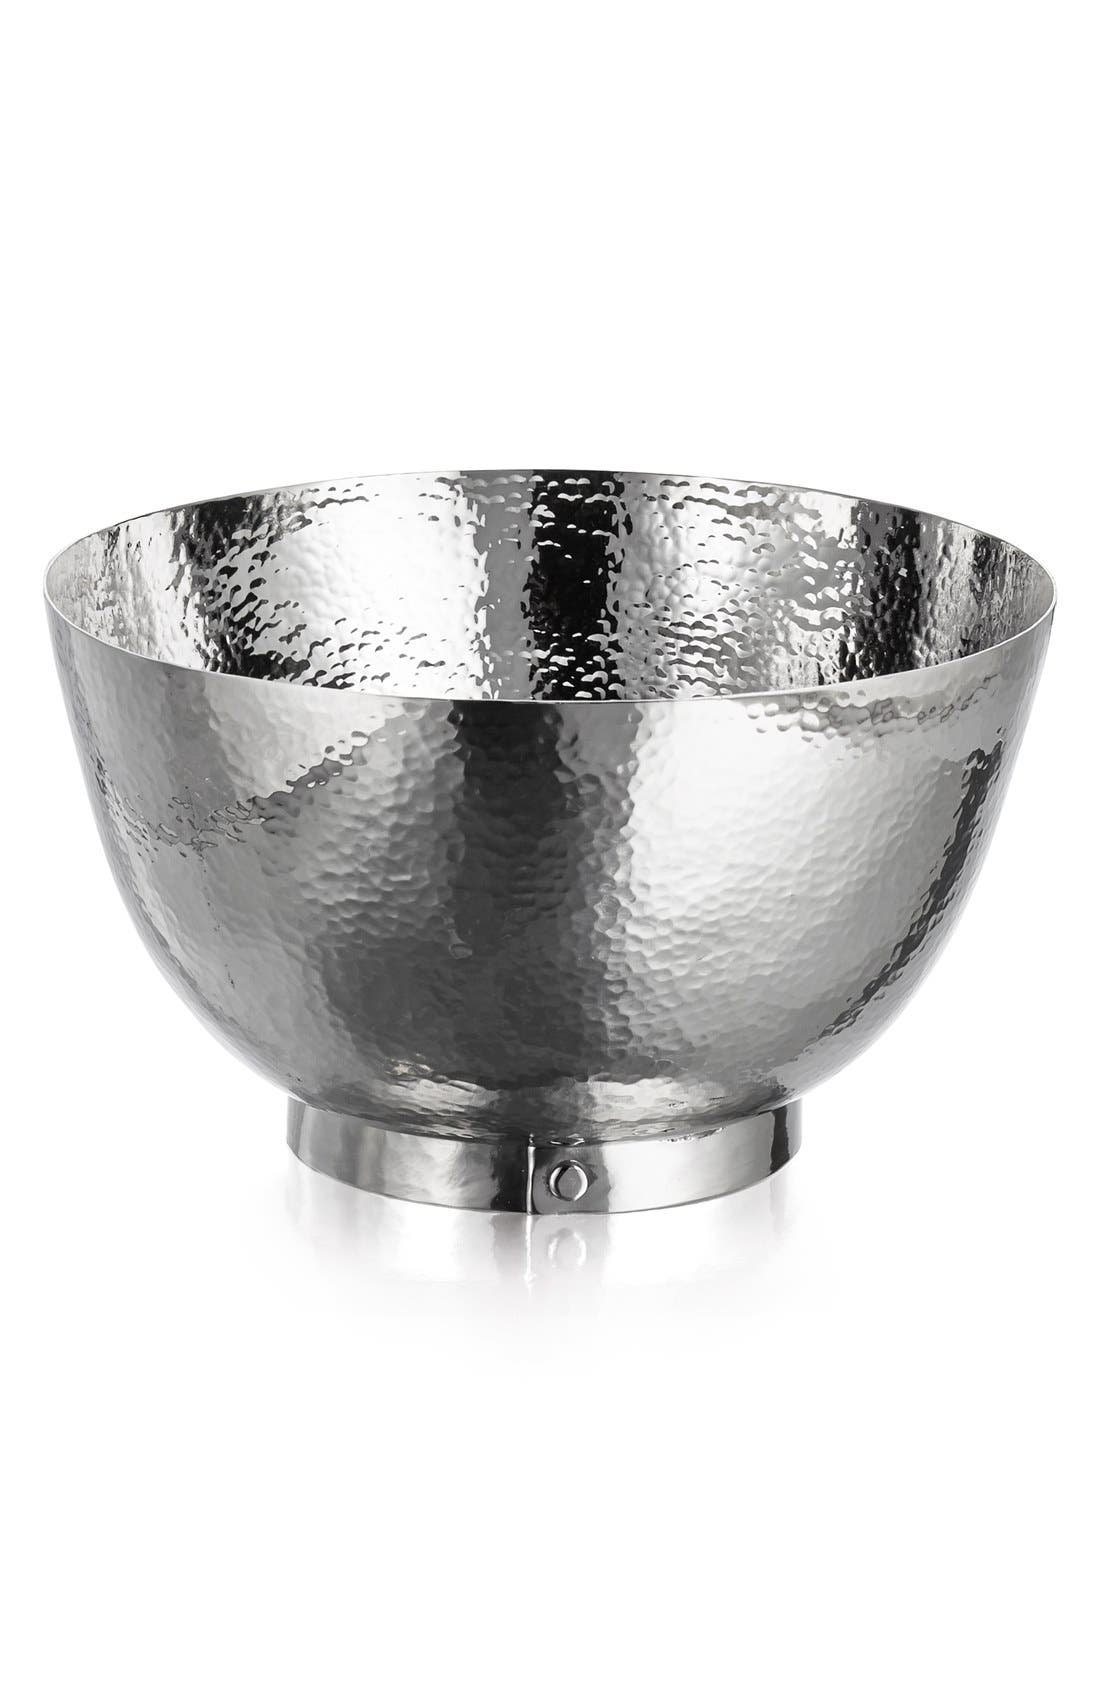 MICHAEL ARAM 'Rivet' Hammered Stainless Steel Bowl